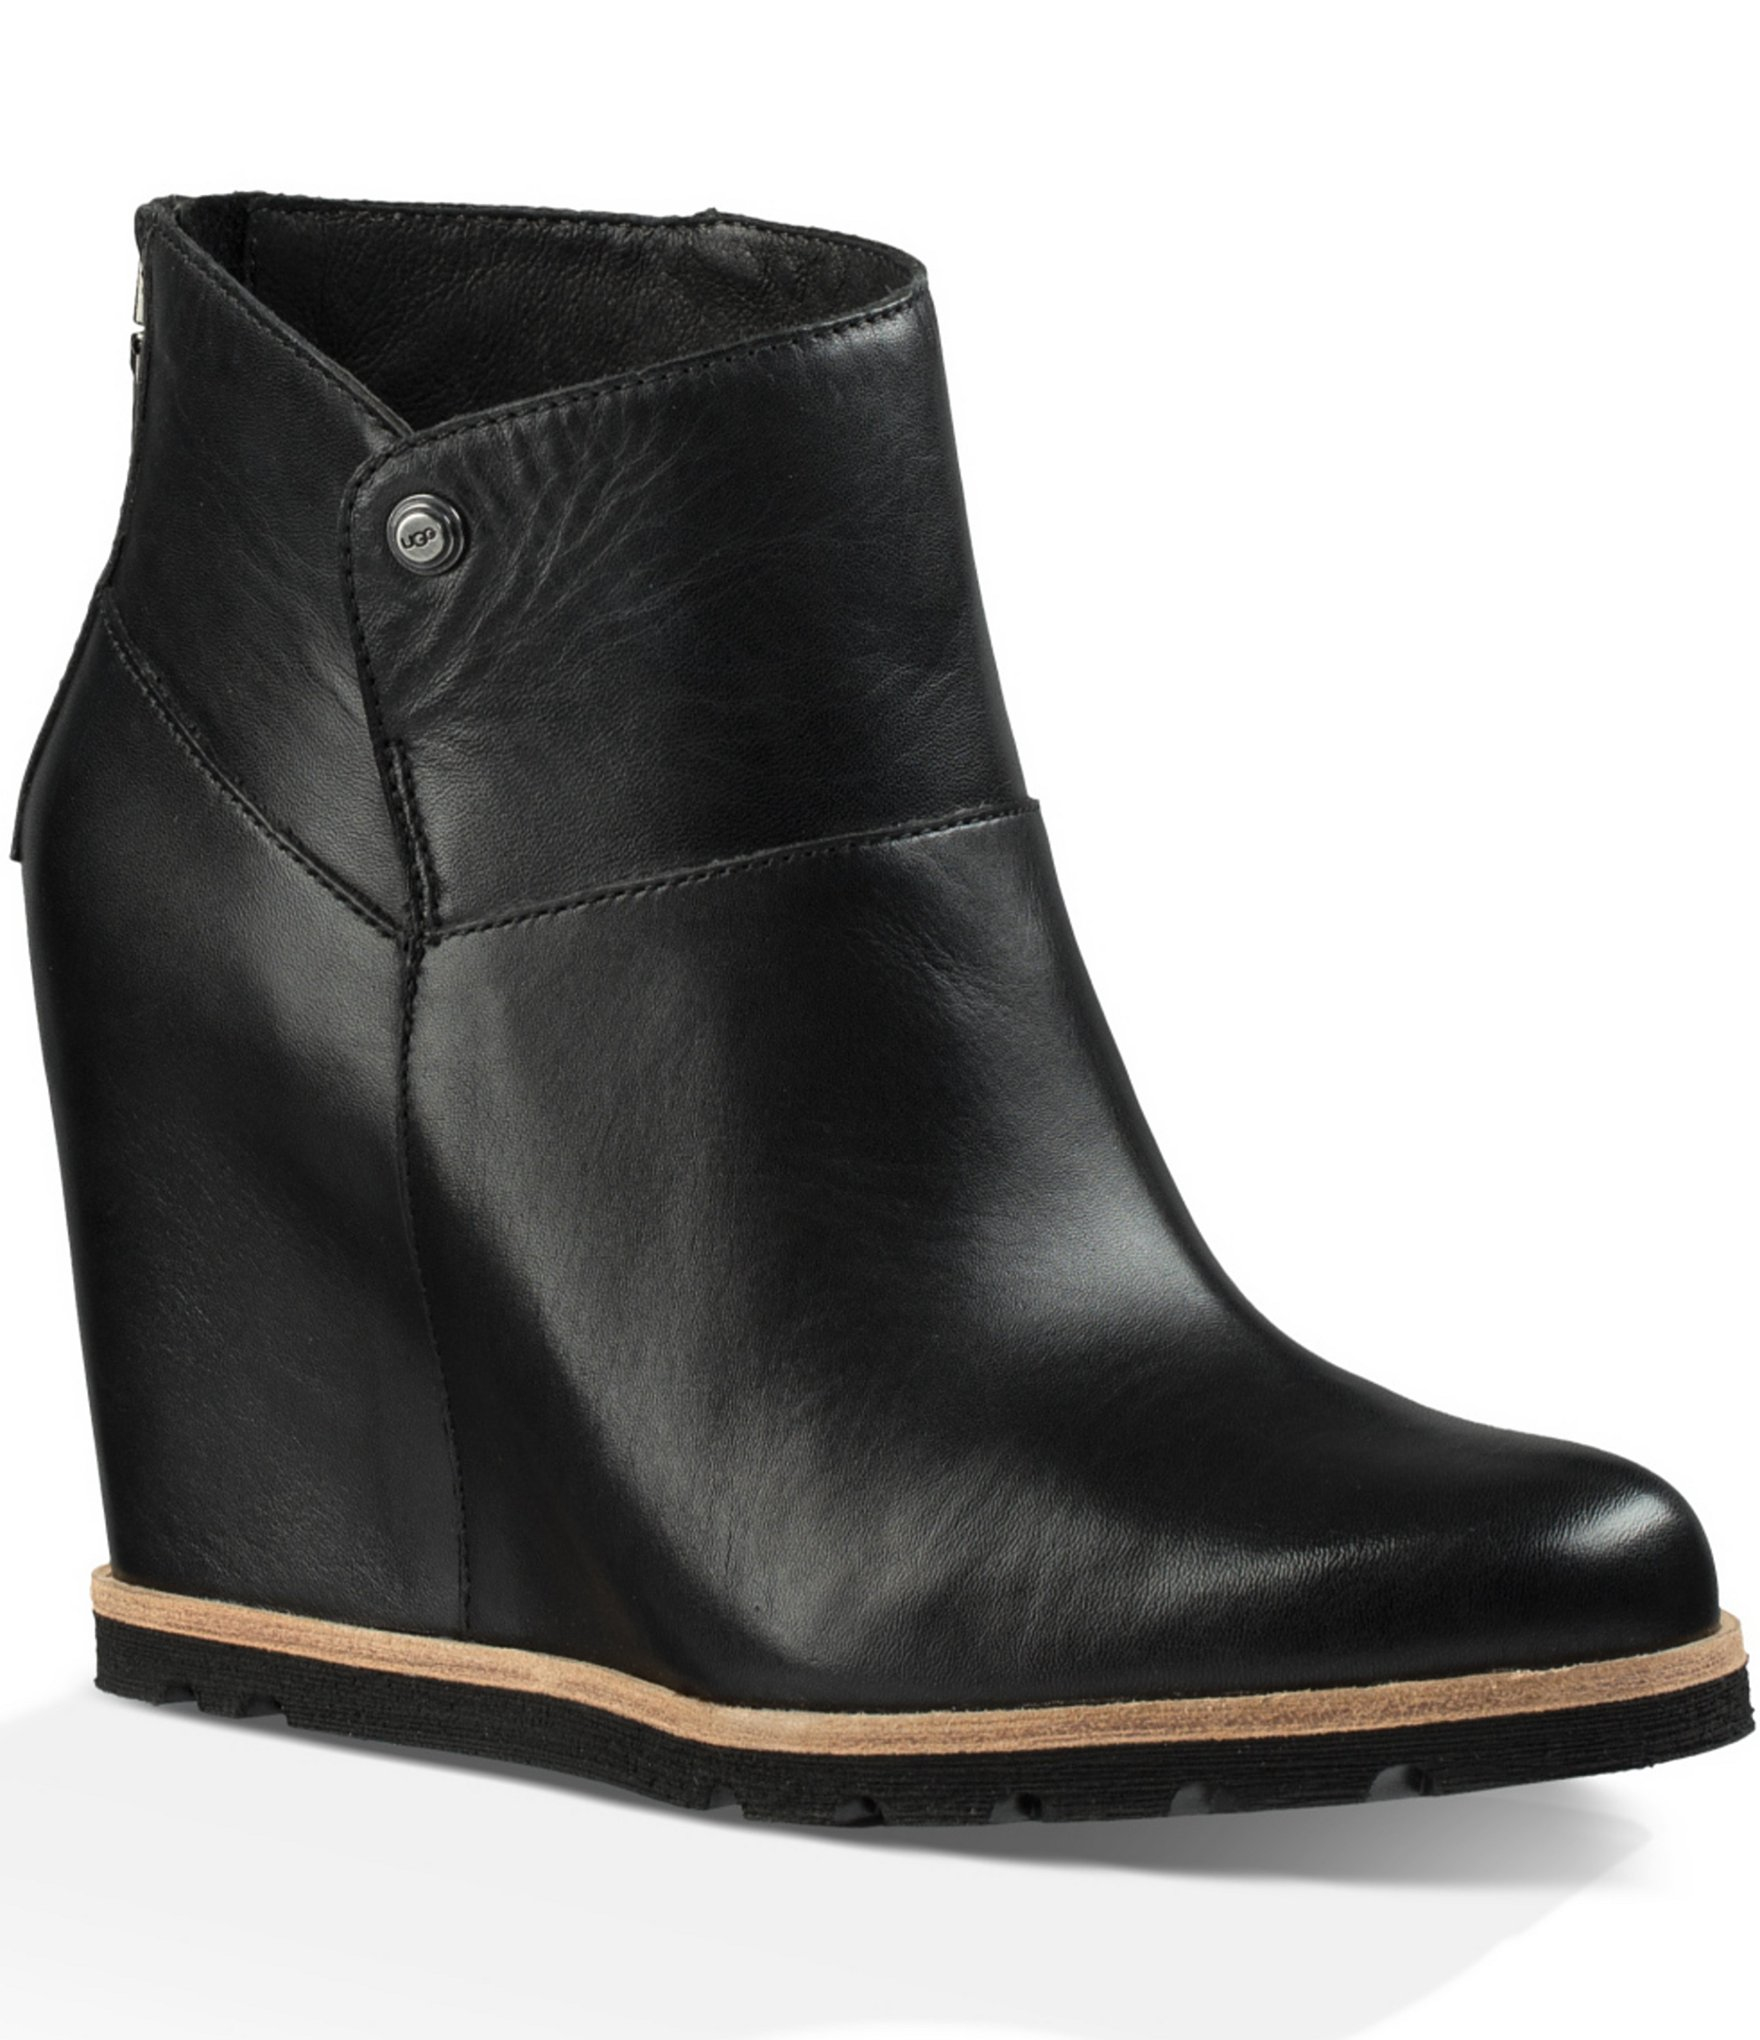 9f481349e3f coupon for ugg wedge boots 35f69 3d3bb